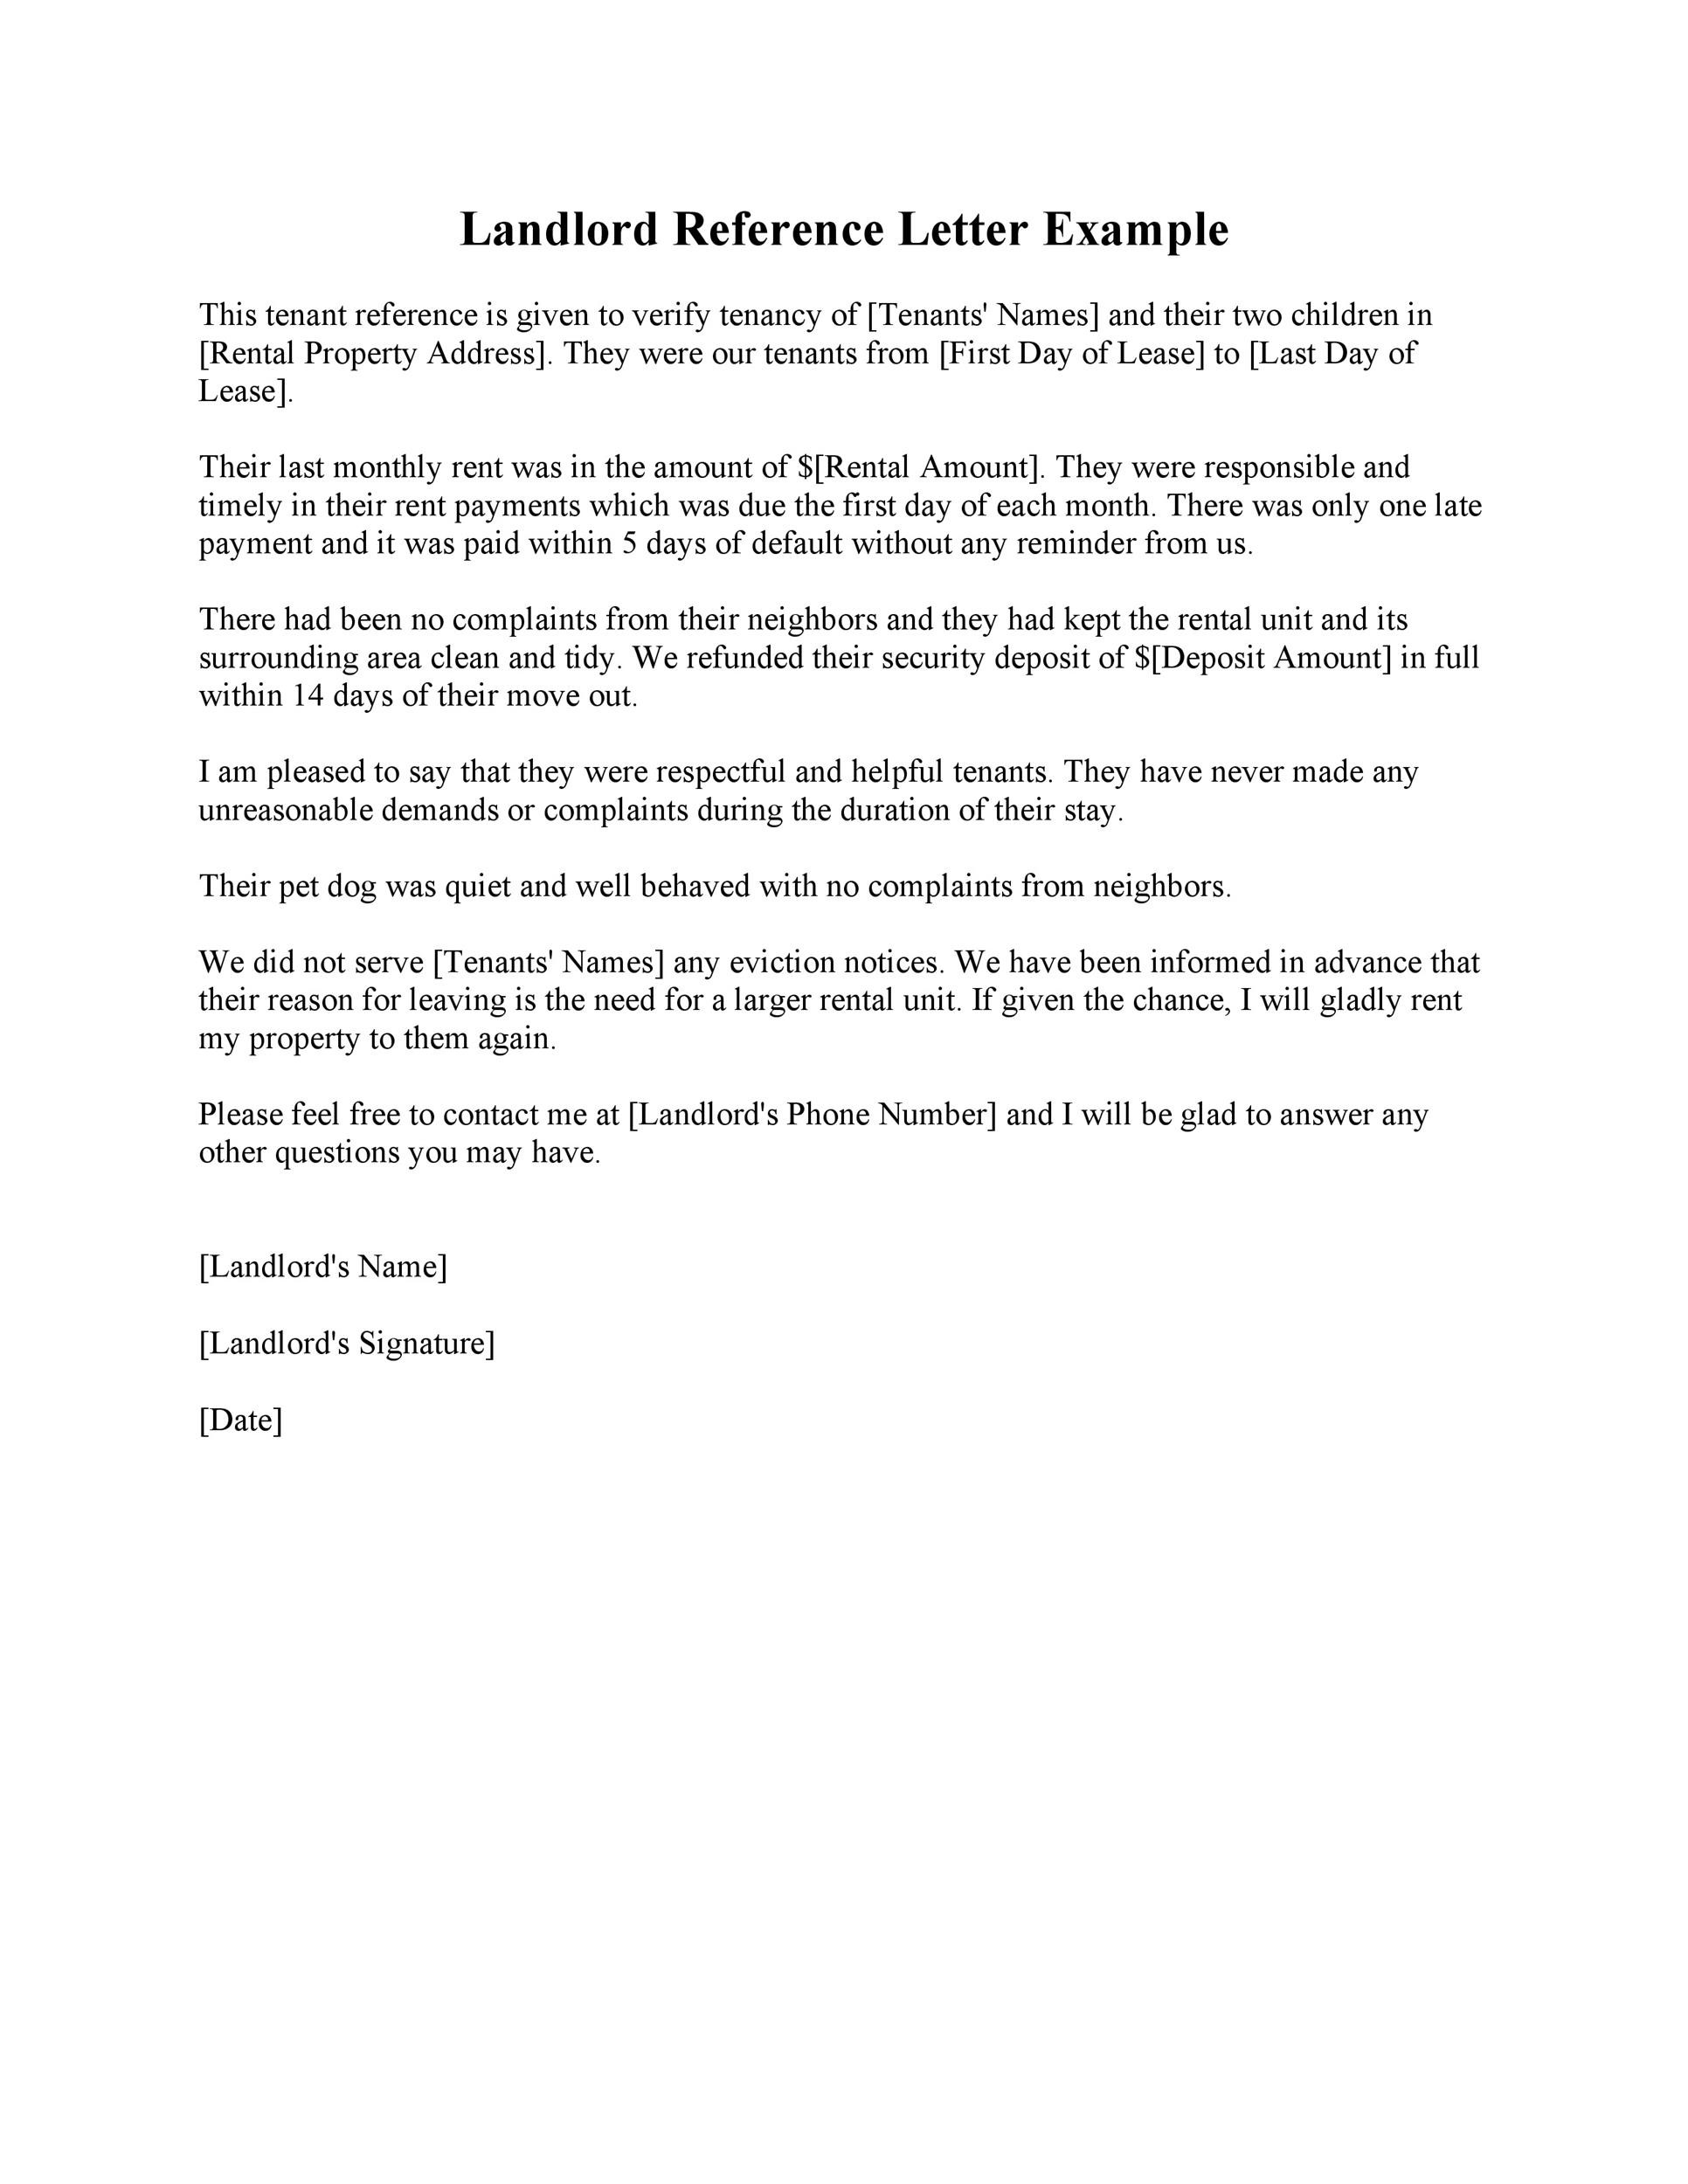 Free landlord reference letter 09